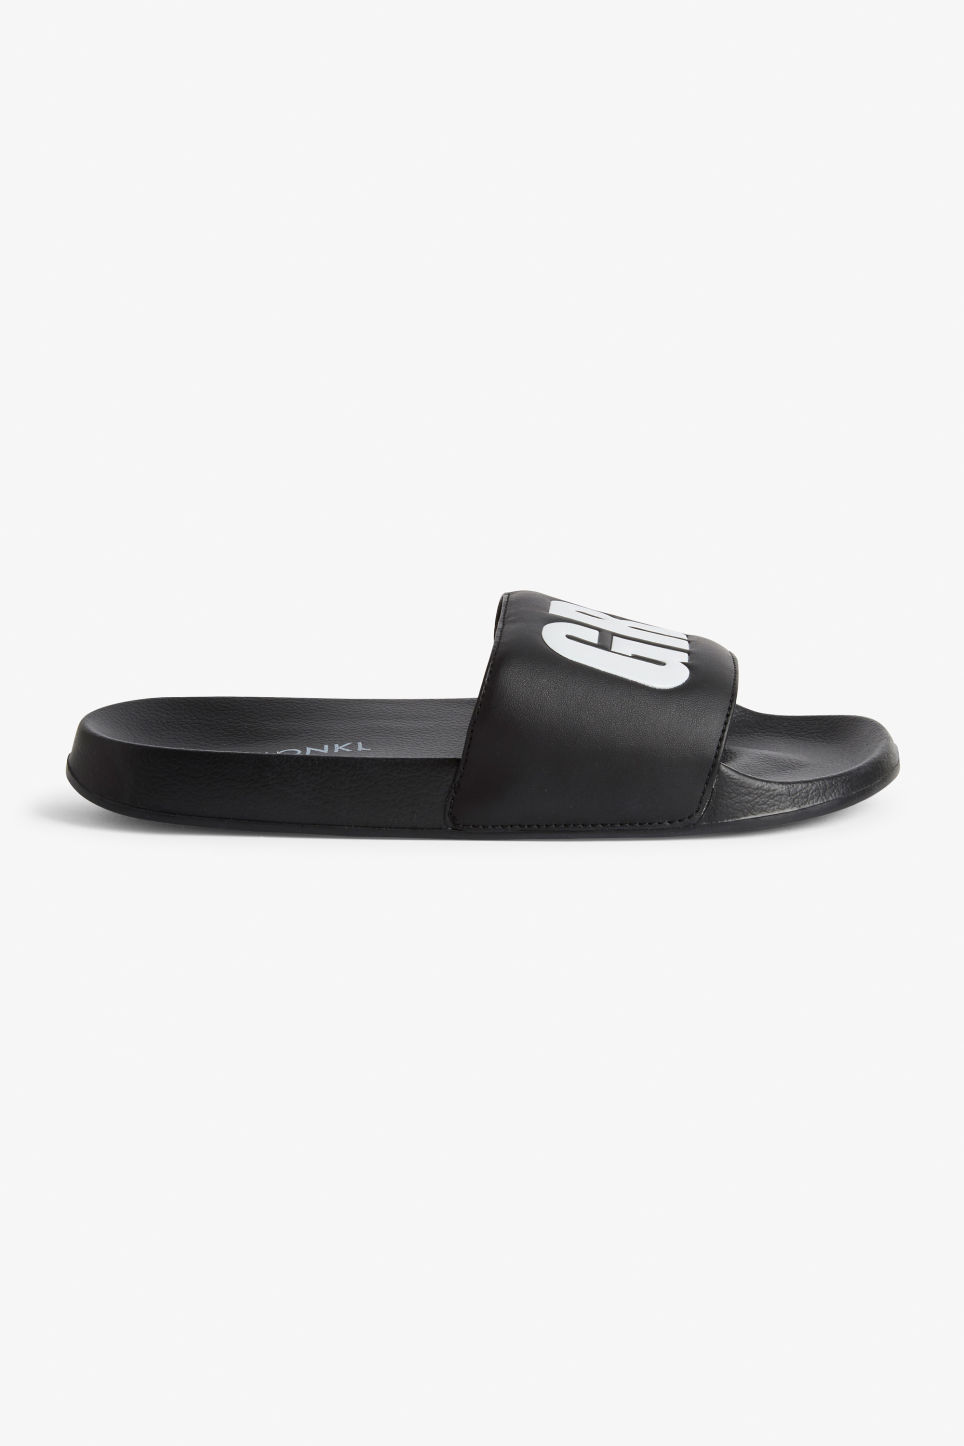 Detailed image of Monki beach sandals in black